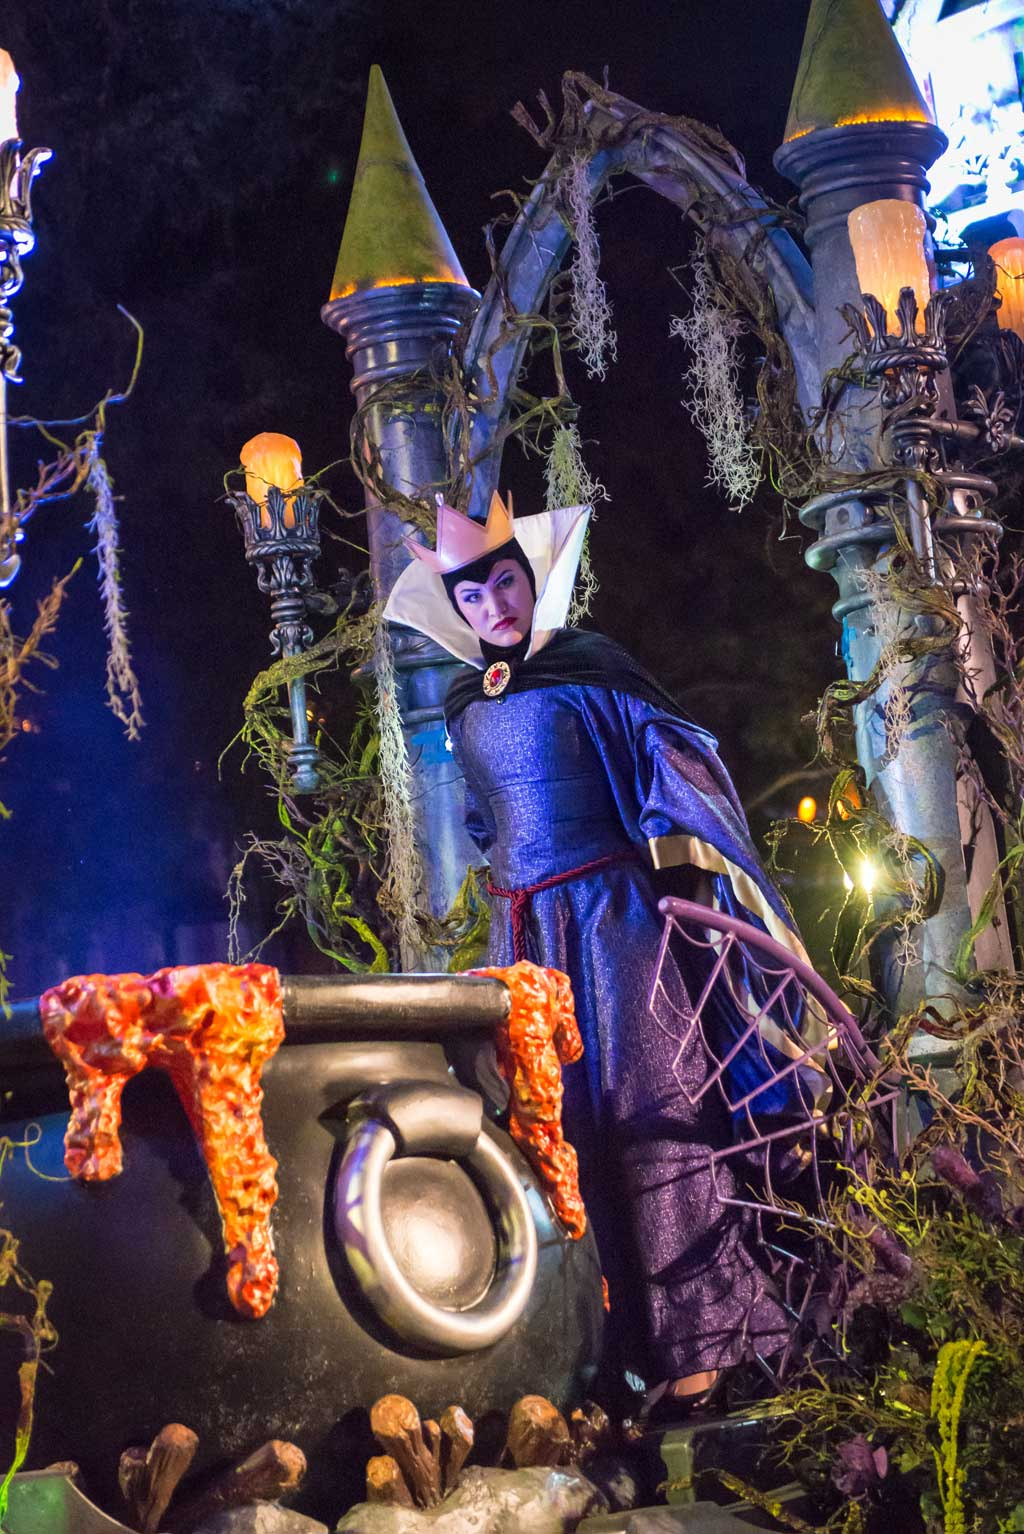 """The guest-favorite """"Frightfully Fun Parade"""" delights guests at Disney California Adventure Park during the all-new separate-ticket Oogie Boogie Bash – A Disney Halloween Party on 20 select nights from Sept. 17-Oct. 31, 2019. The Headless Horseman of Sleepy Hollow heralds the arrival of Mickey Mouse and Minnie Mouse who lead the cavalcade of characters, including many mischievous Disney villains. New this year, the ever-curious and whimsical Cheshire Cat from """"Alice in Wonderland"""" joins the parade, mischievously smiling at all the magical mayhem. (Disneyland Resort)"""